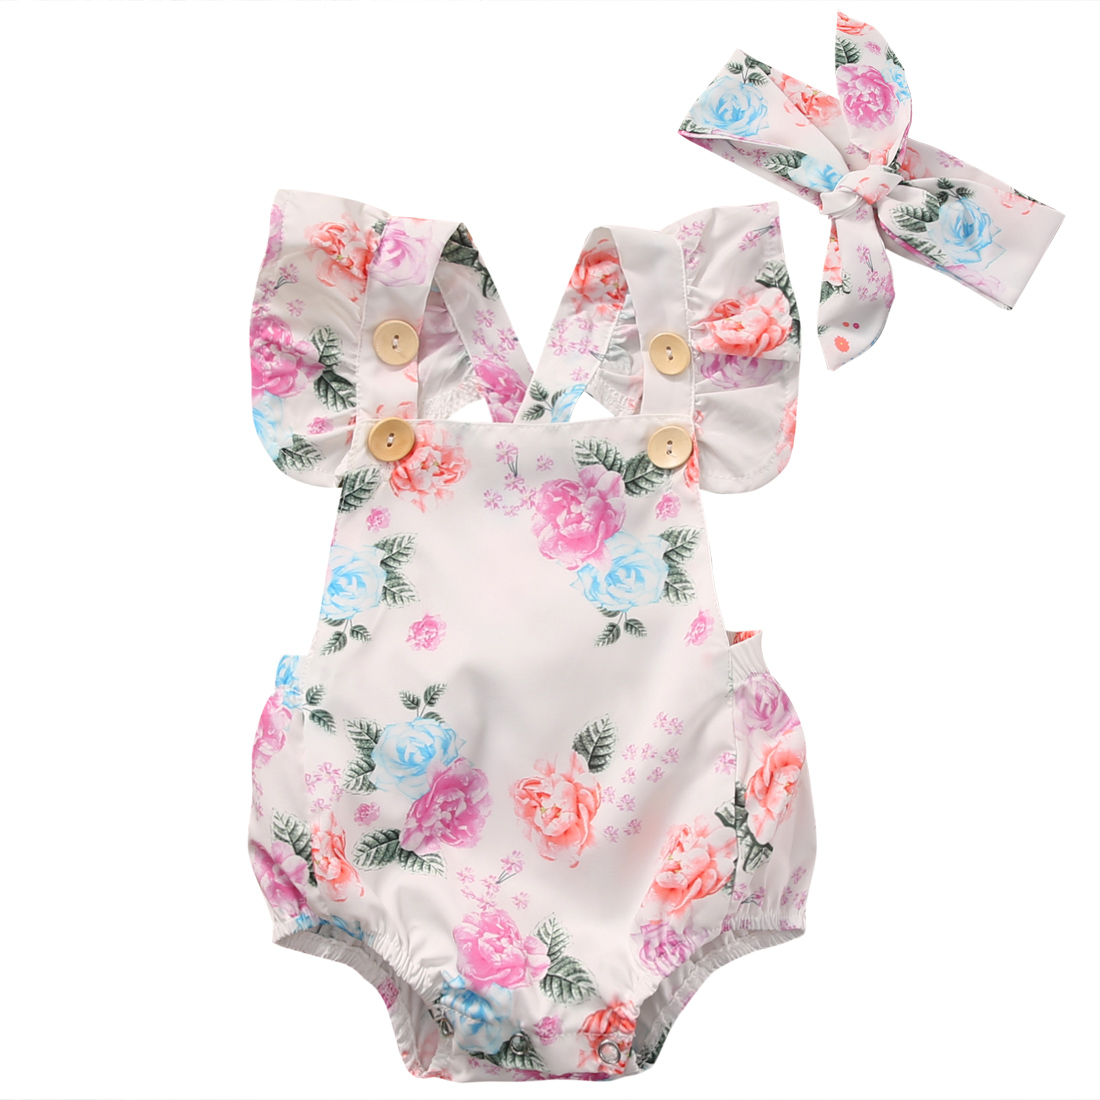 Cotton Baby Girls Floral Romper Summer Headband Sunsuit Outfit Set Kids Girl Clothes Gift 2pcs Gift